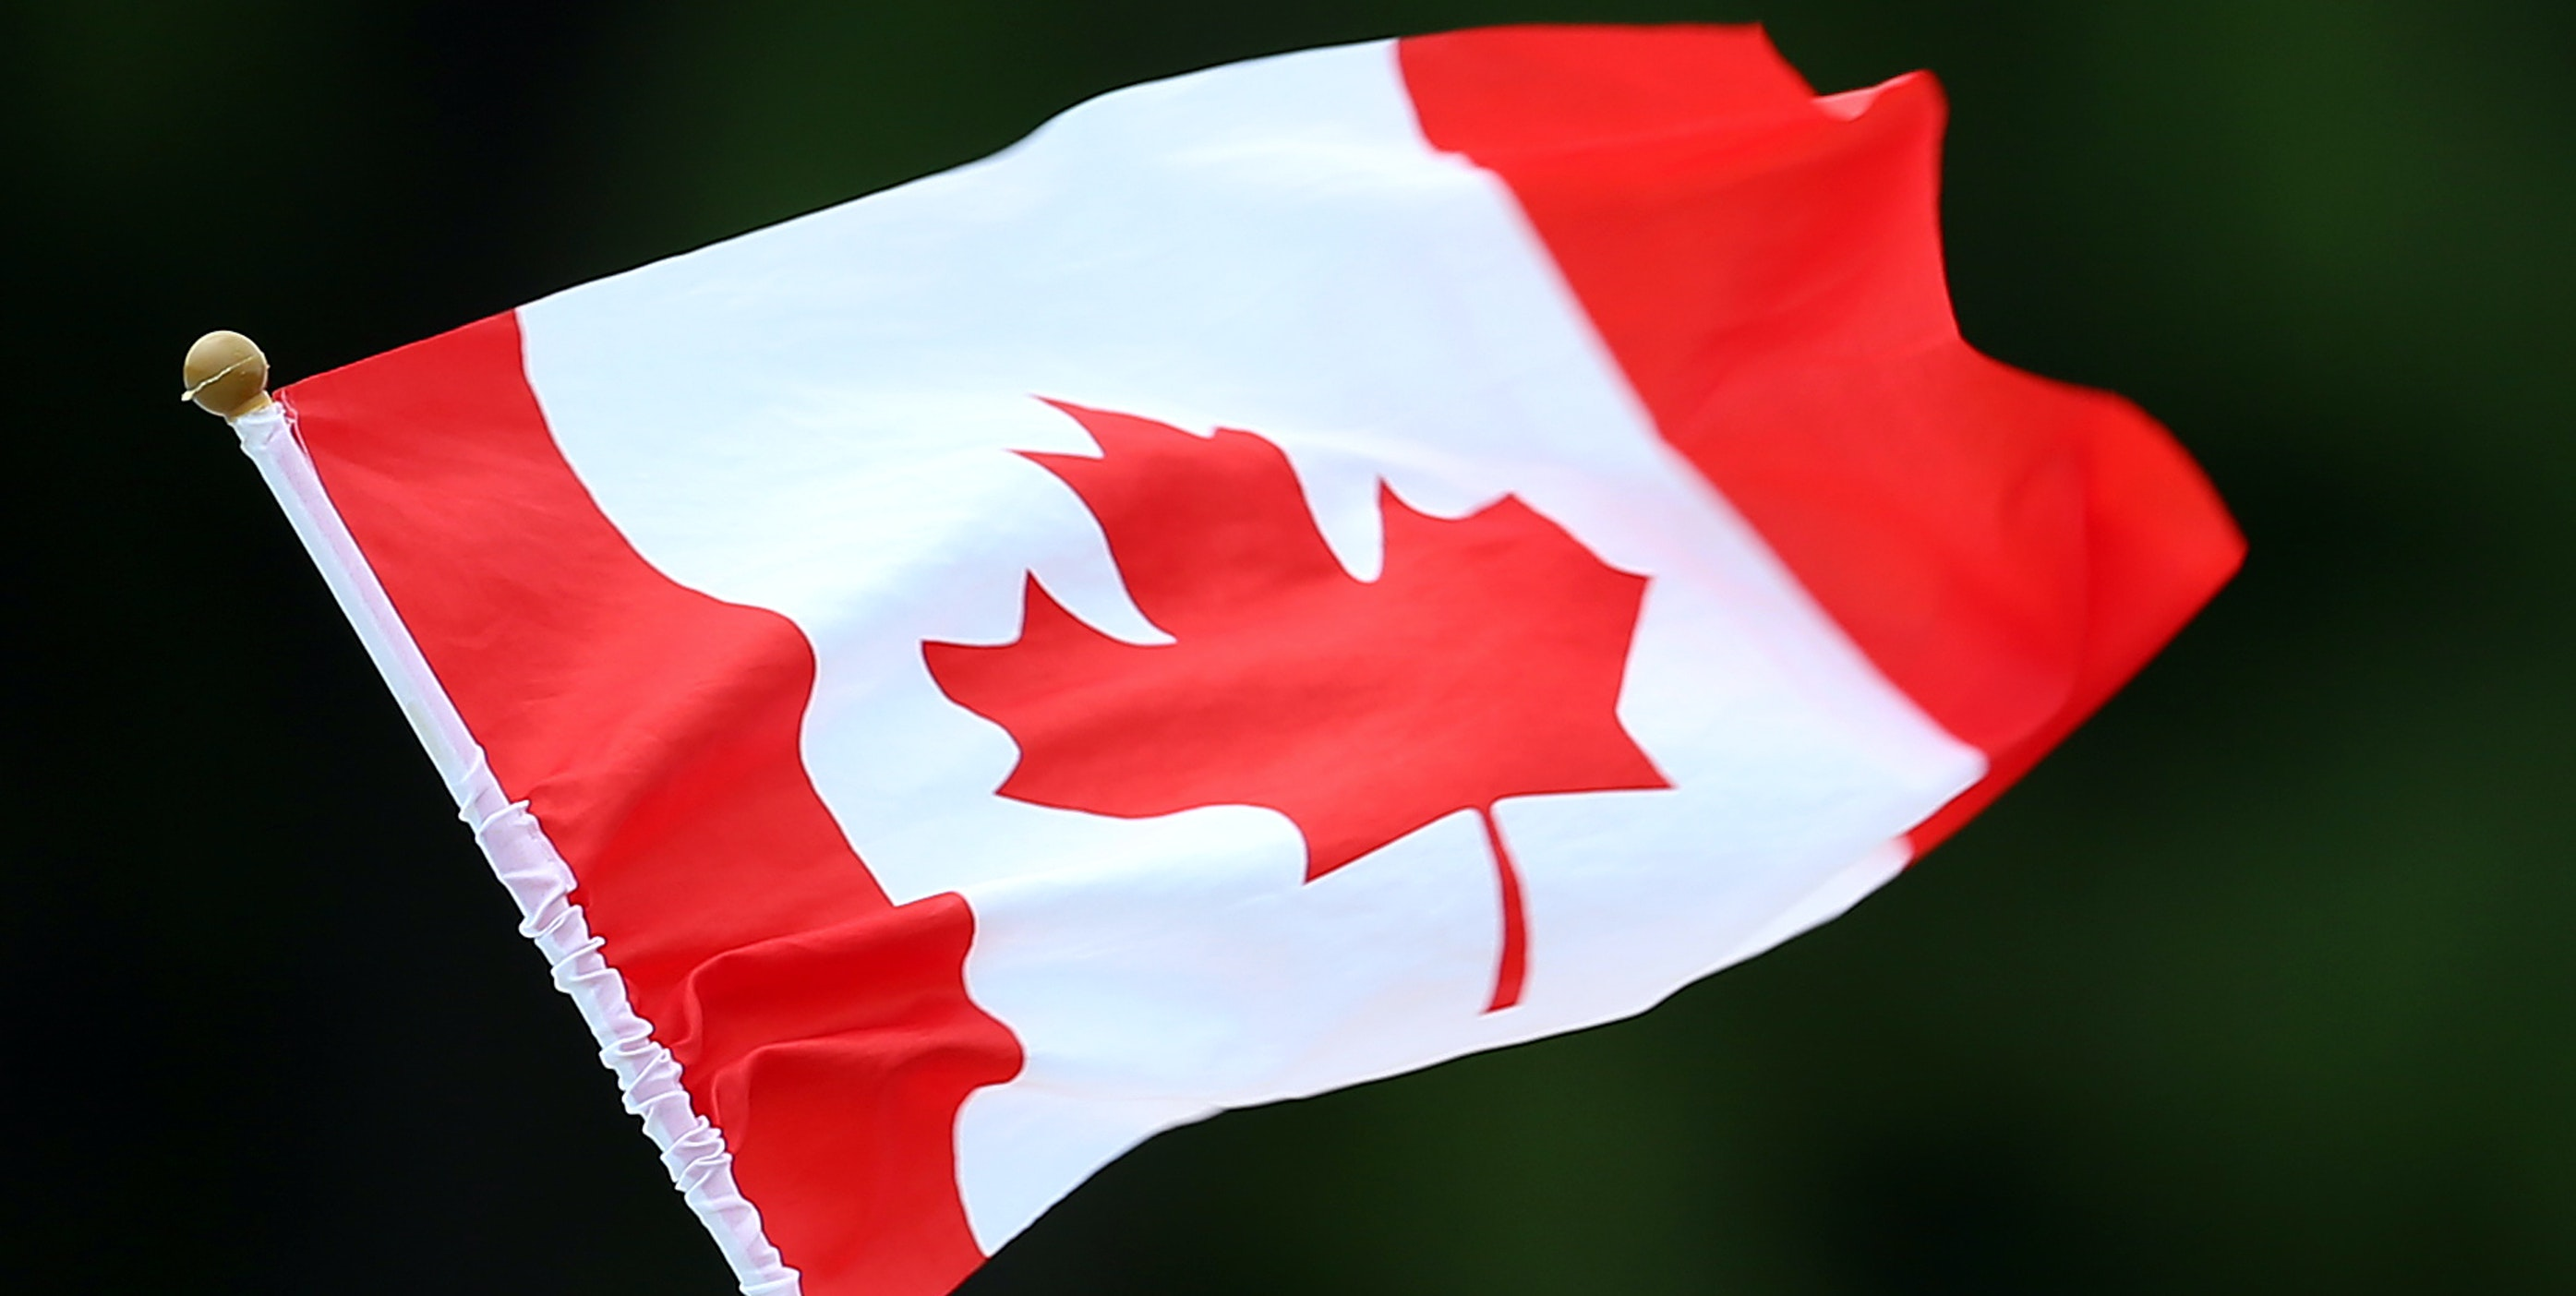 MONTREAL, QC - AUGUST 05:  A Canadian flag is waved as swimmers compete in the Women's 200m Freestyle at Parc Jean-Drapeau during the 15th FINA World Masters Championships on August 05, 2014 in Montreal, Canada.  (Photo by Vaughn Ridley/Getty Images)